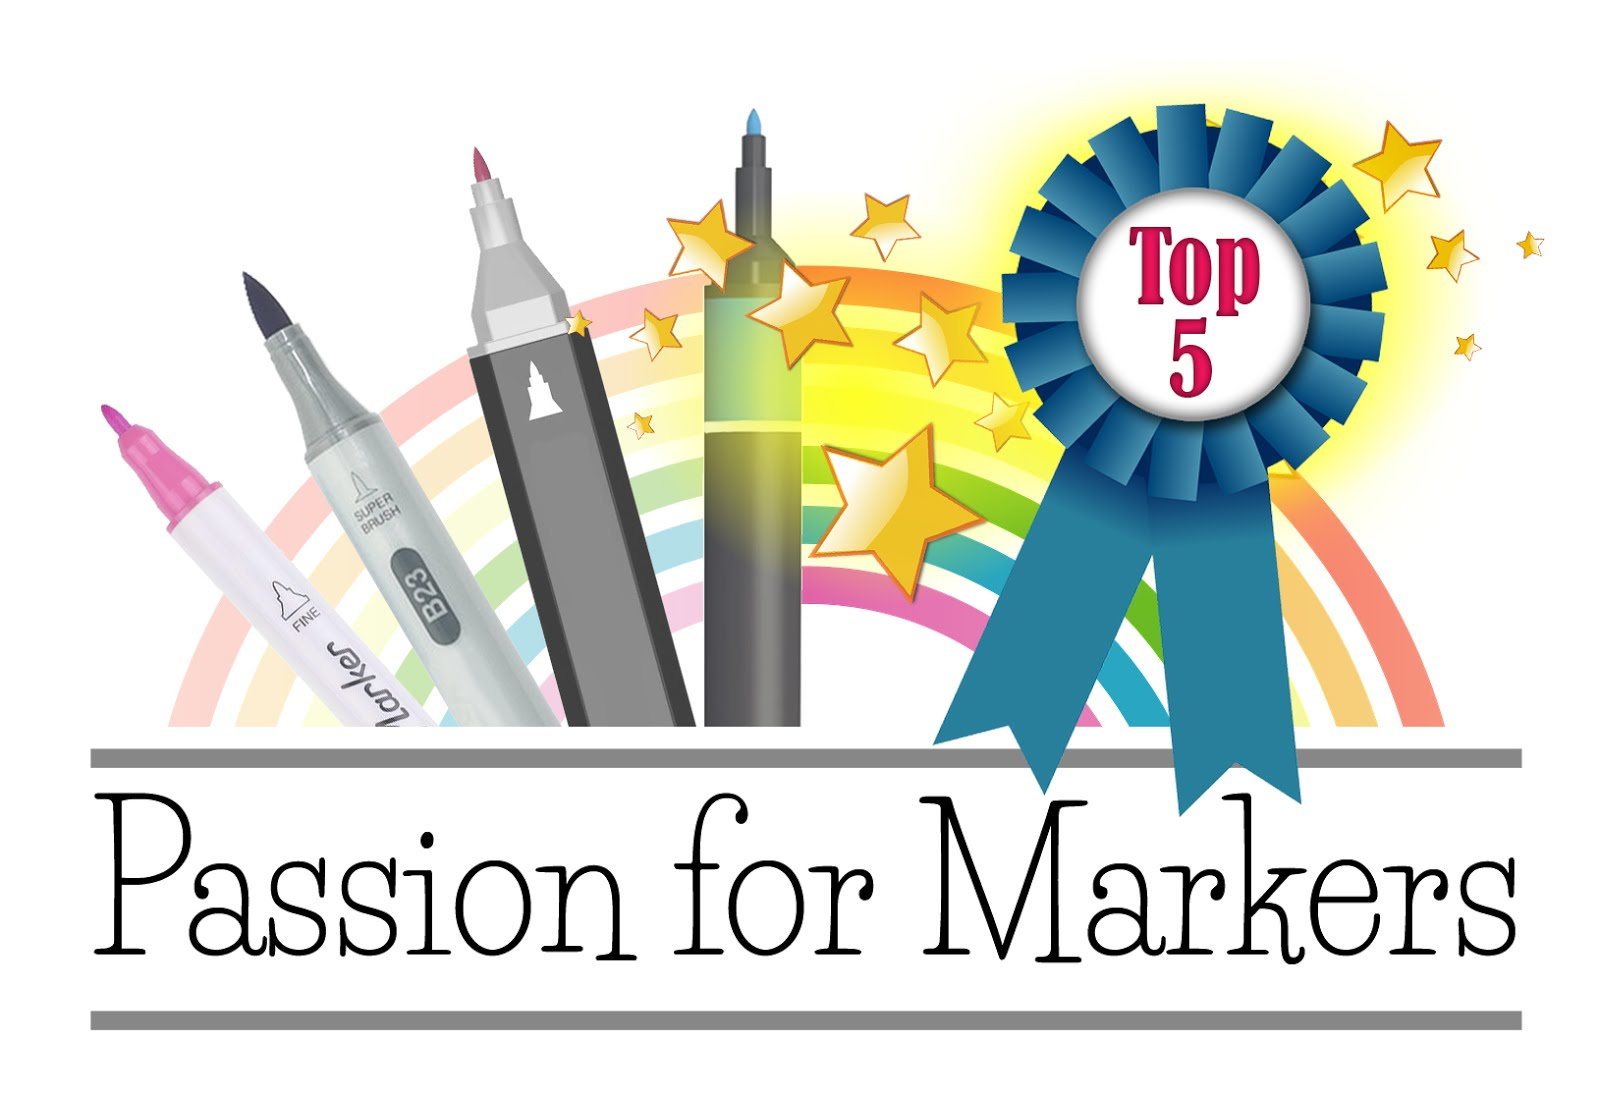 I Won a Top 5 at Passion for Markers